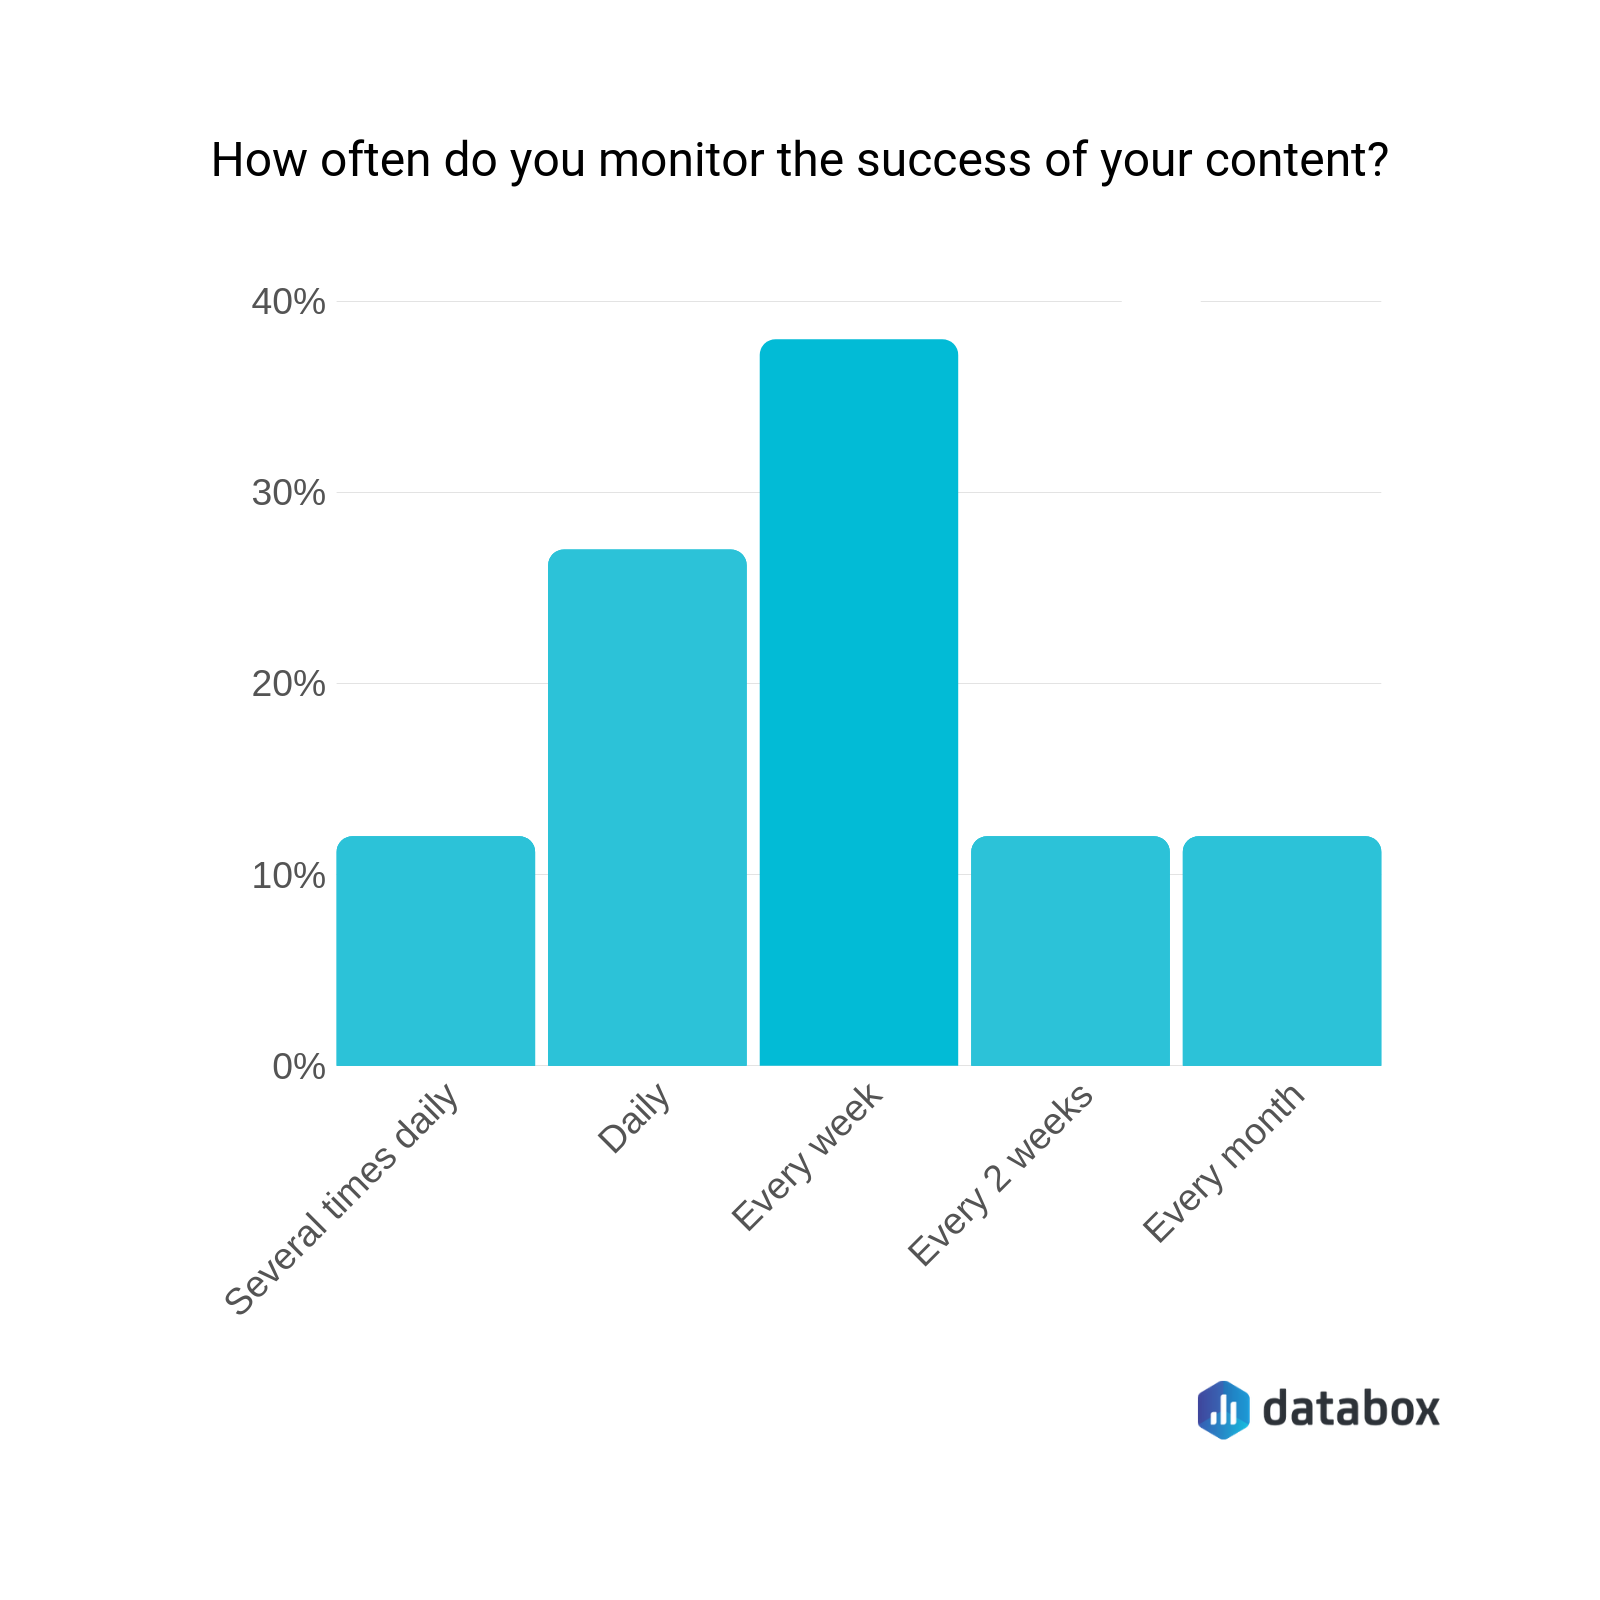 how often do you monitor the success of your content?